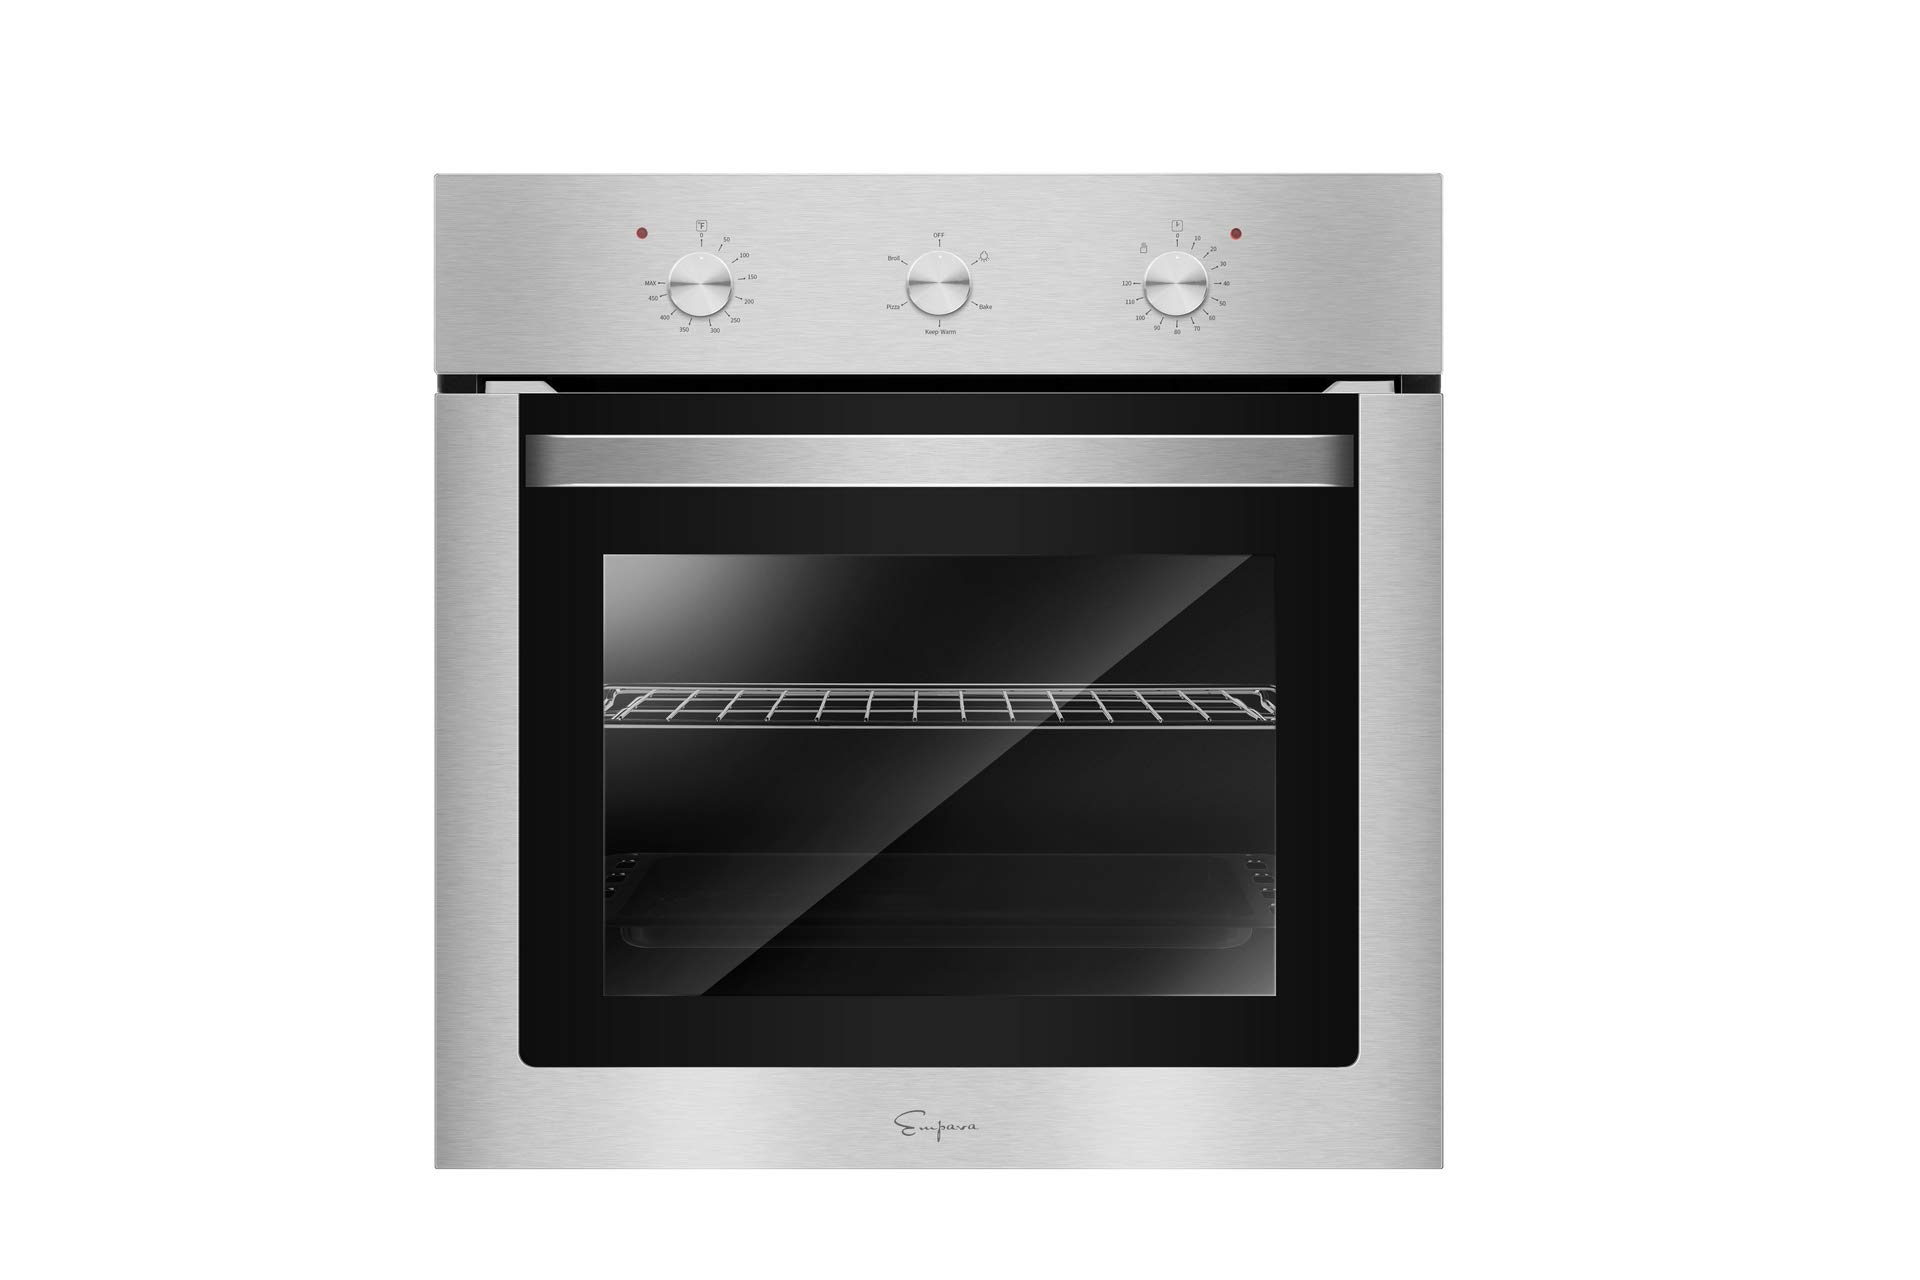 Empava 24XWOA01 24'' Electric Single Wall Oven with Basic Broil Bake Functions Mechanical Knobs Control Stainless Steel, WOA01 by Empava